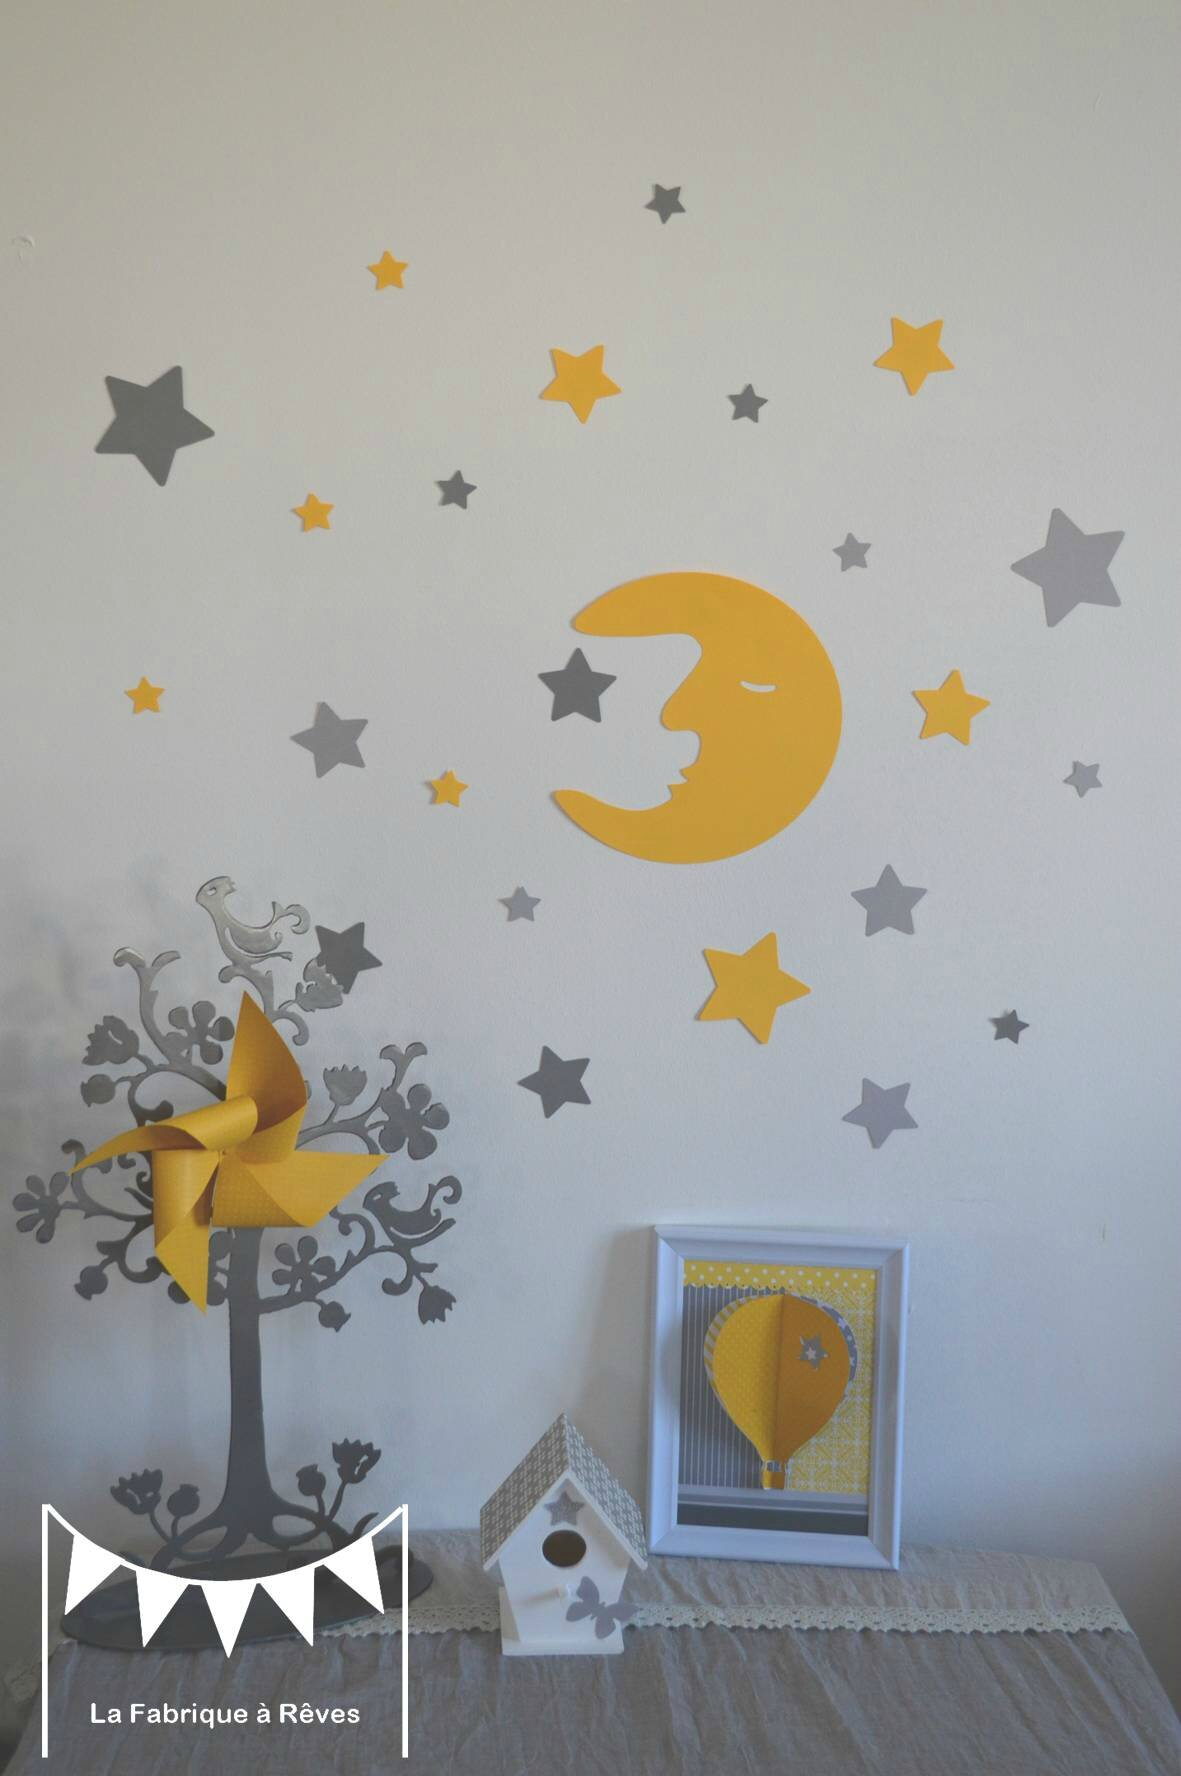 Stickers d coration chambre enfant fille b b gar on lune et toiles jaune gris photo de th me for Decoration chambre bebe jaune et gris